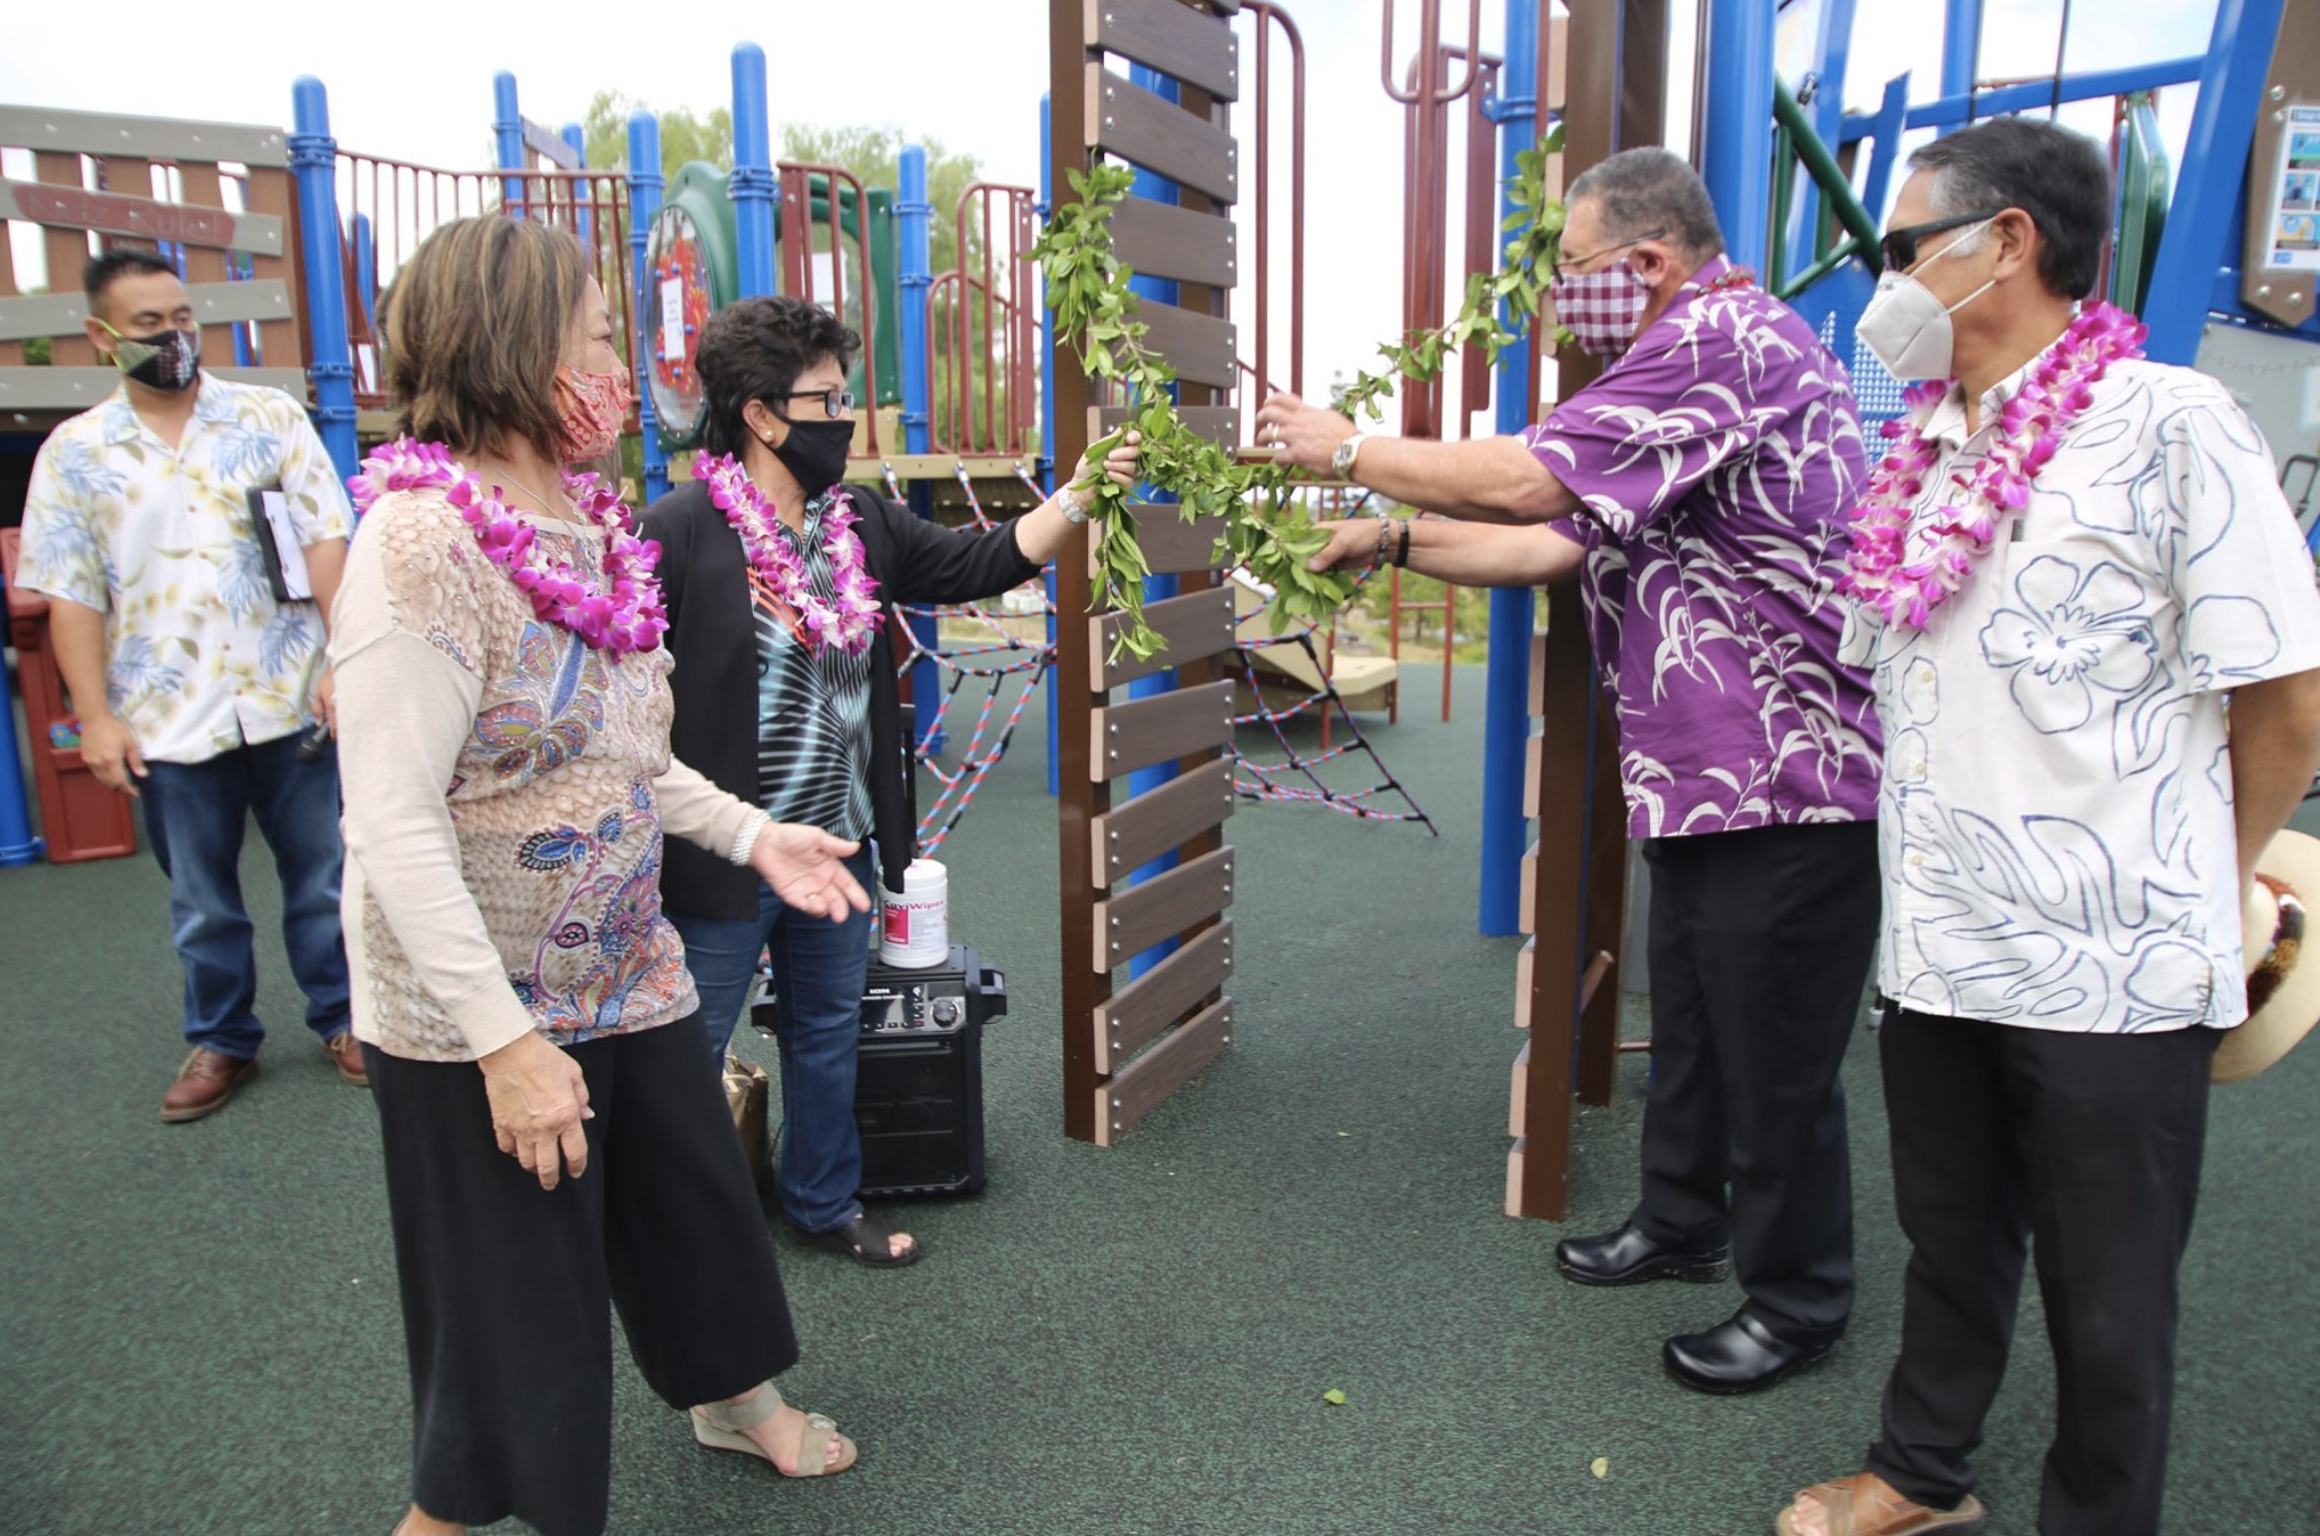 $775,000 Kula Park Playground Now Open